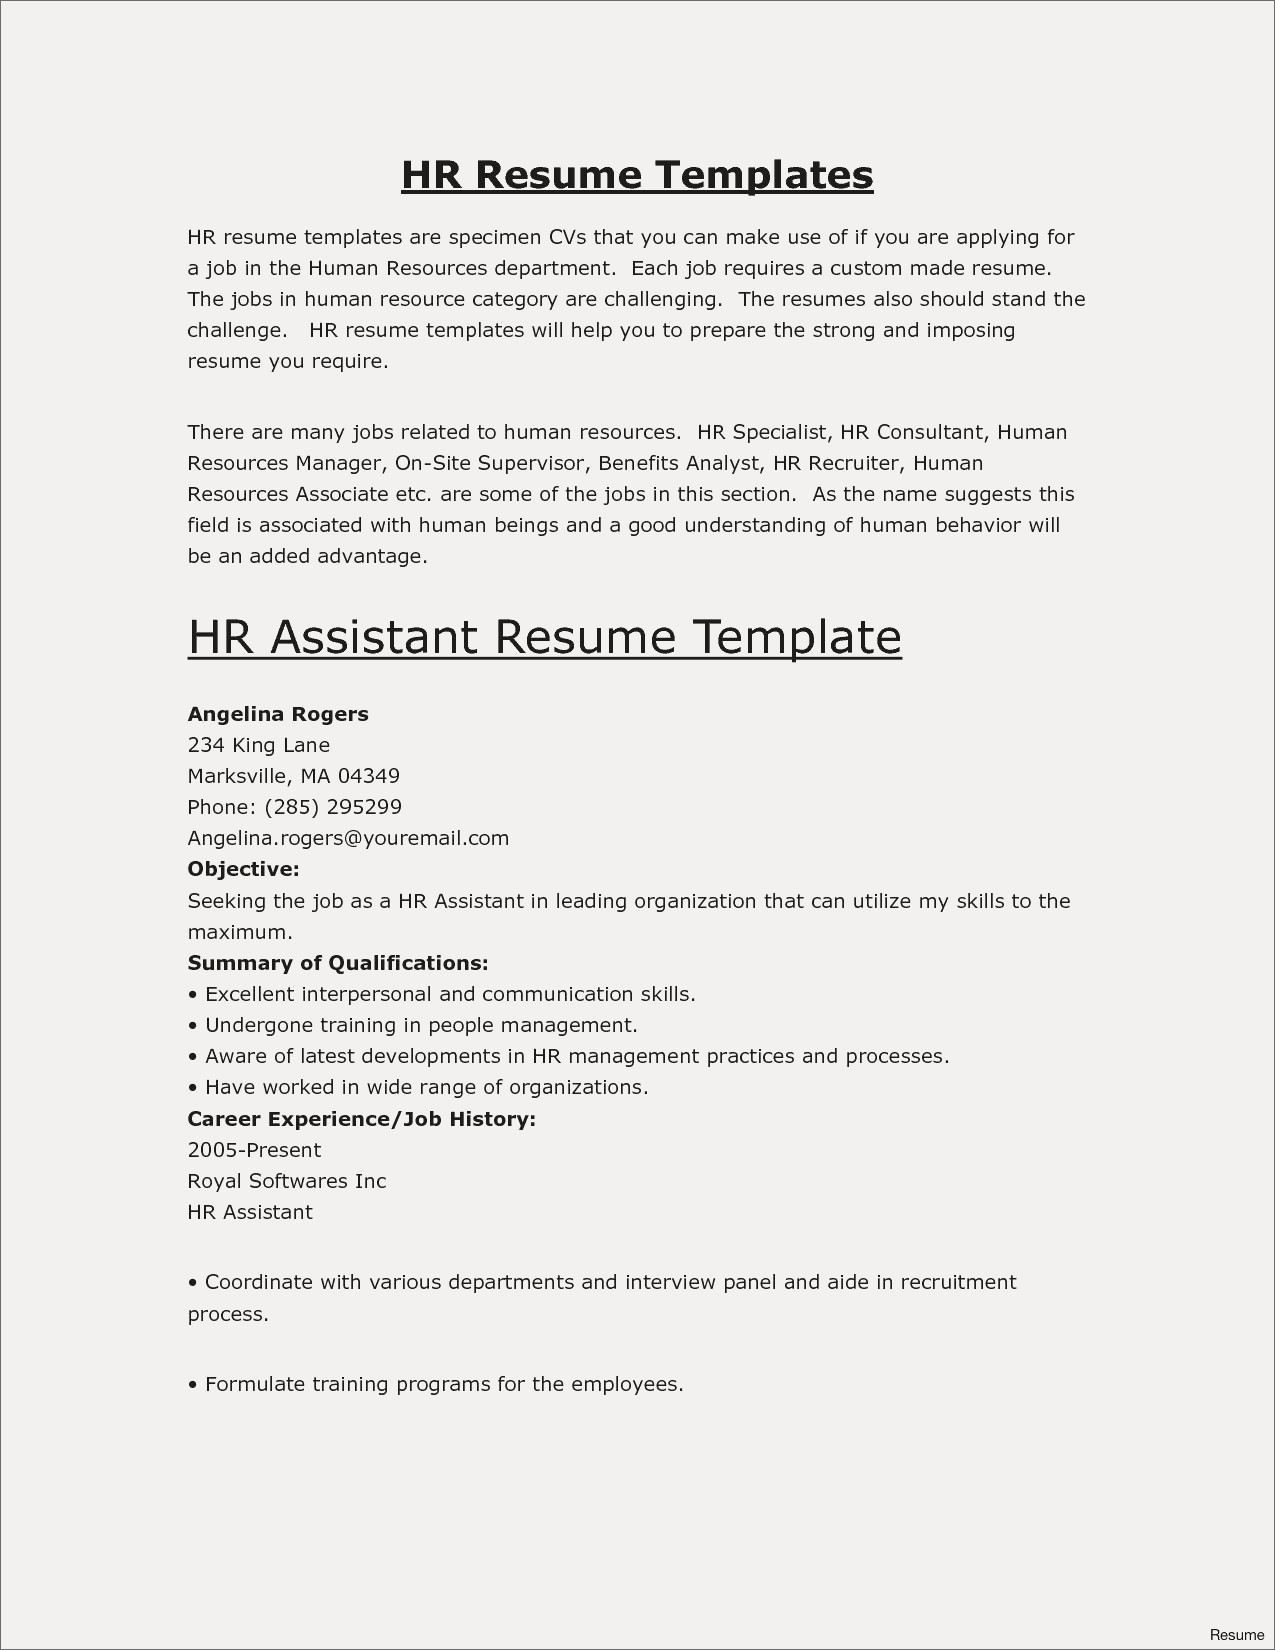 Resume format for Engineers - Engineering Resumes Templates Save Fresh Pr Resume Template Elegant